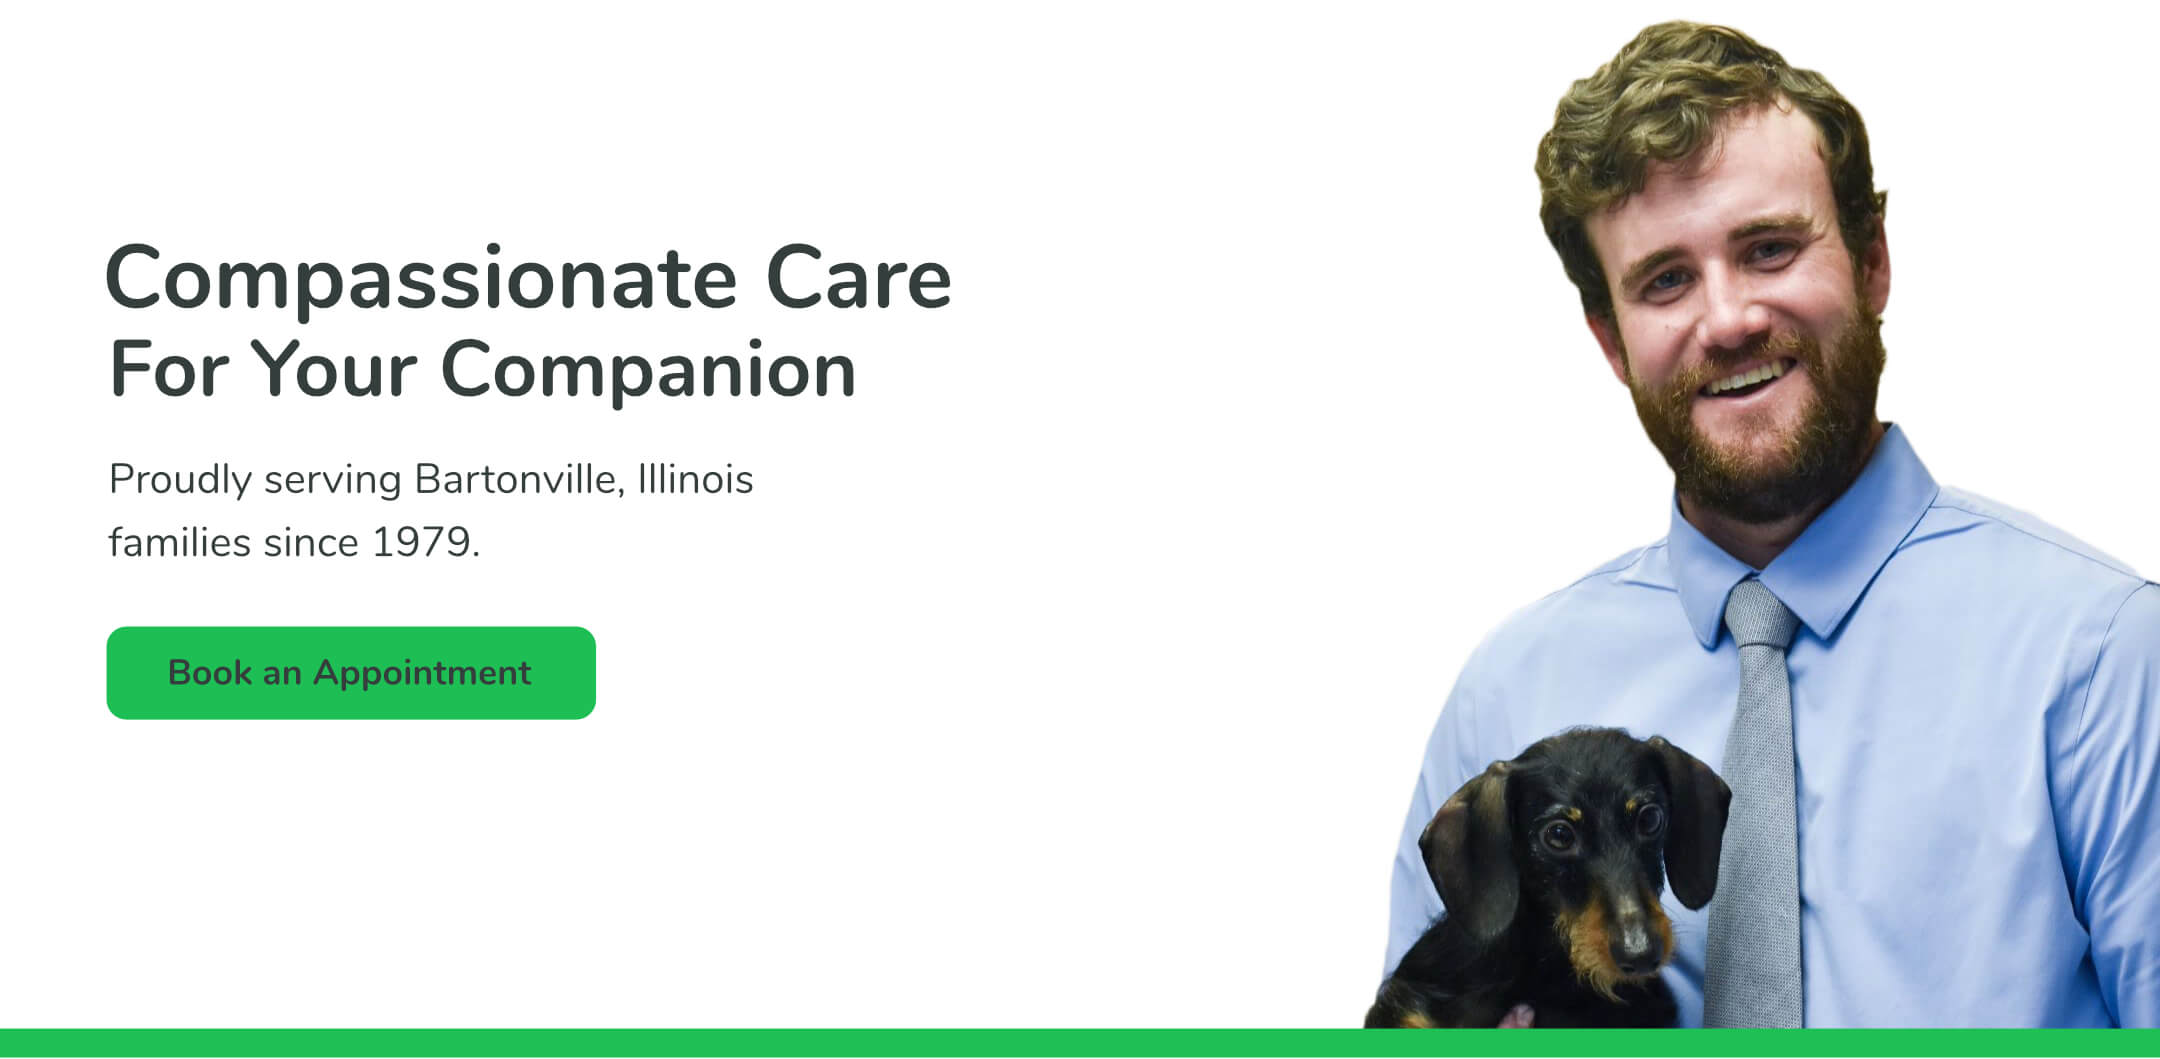 Compassionate Care For Your Companion. Proudly serving Bartonville Illinois families since 1979.